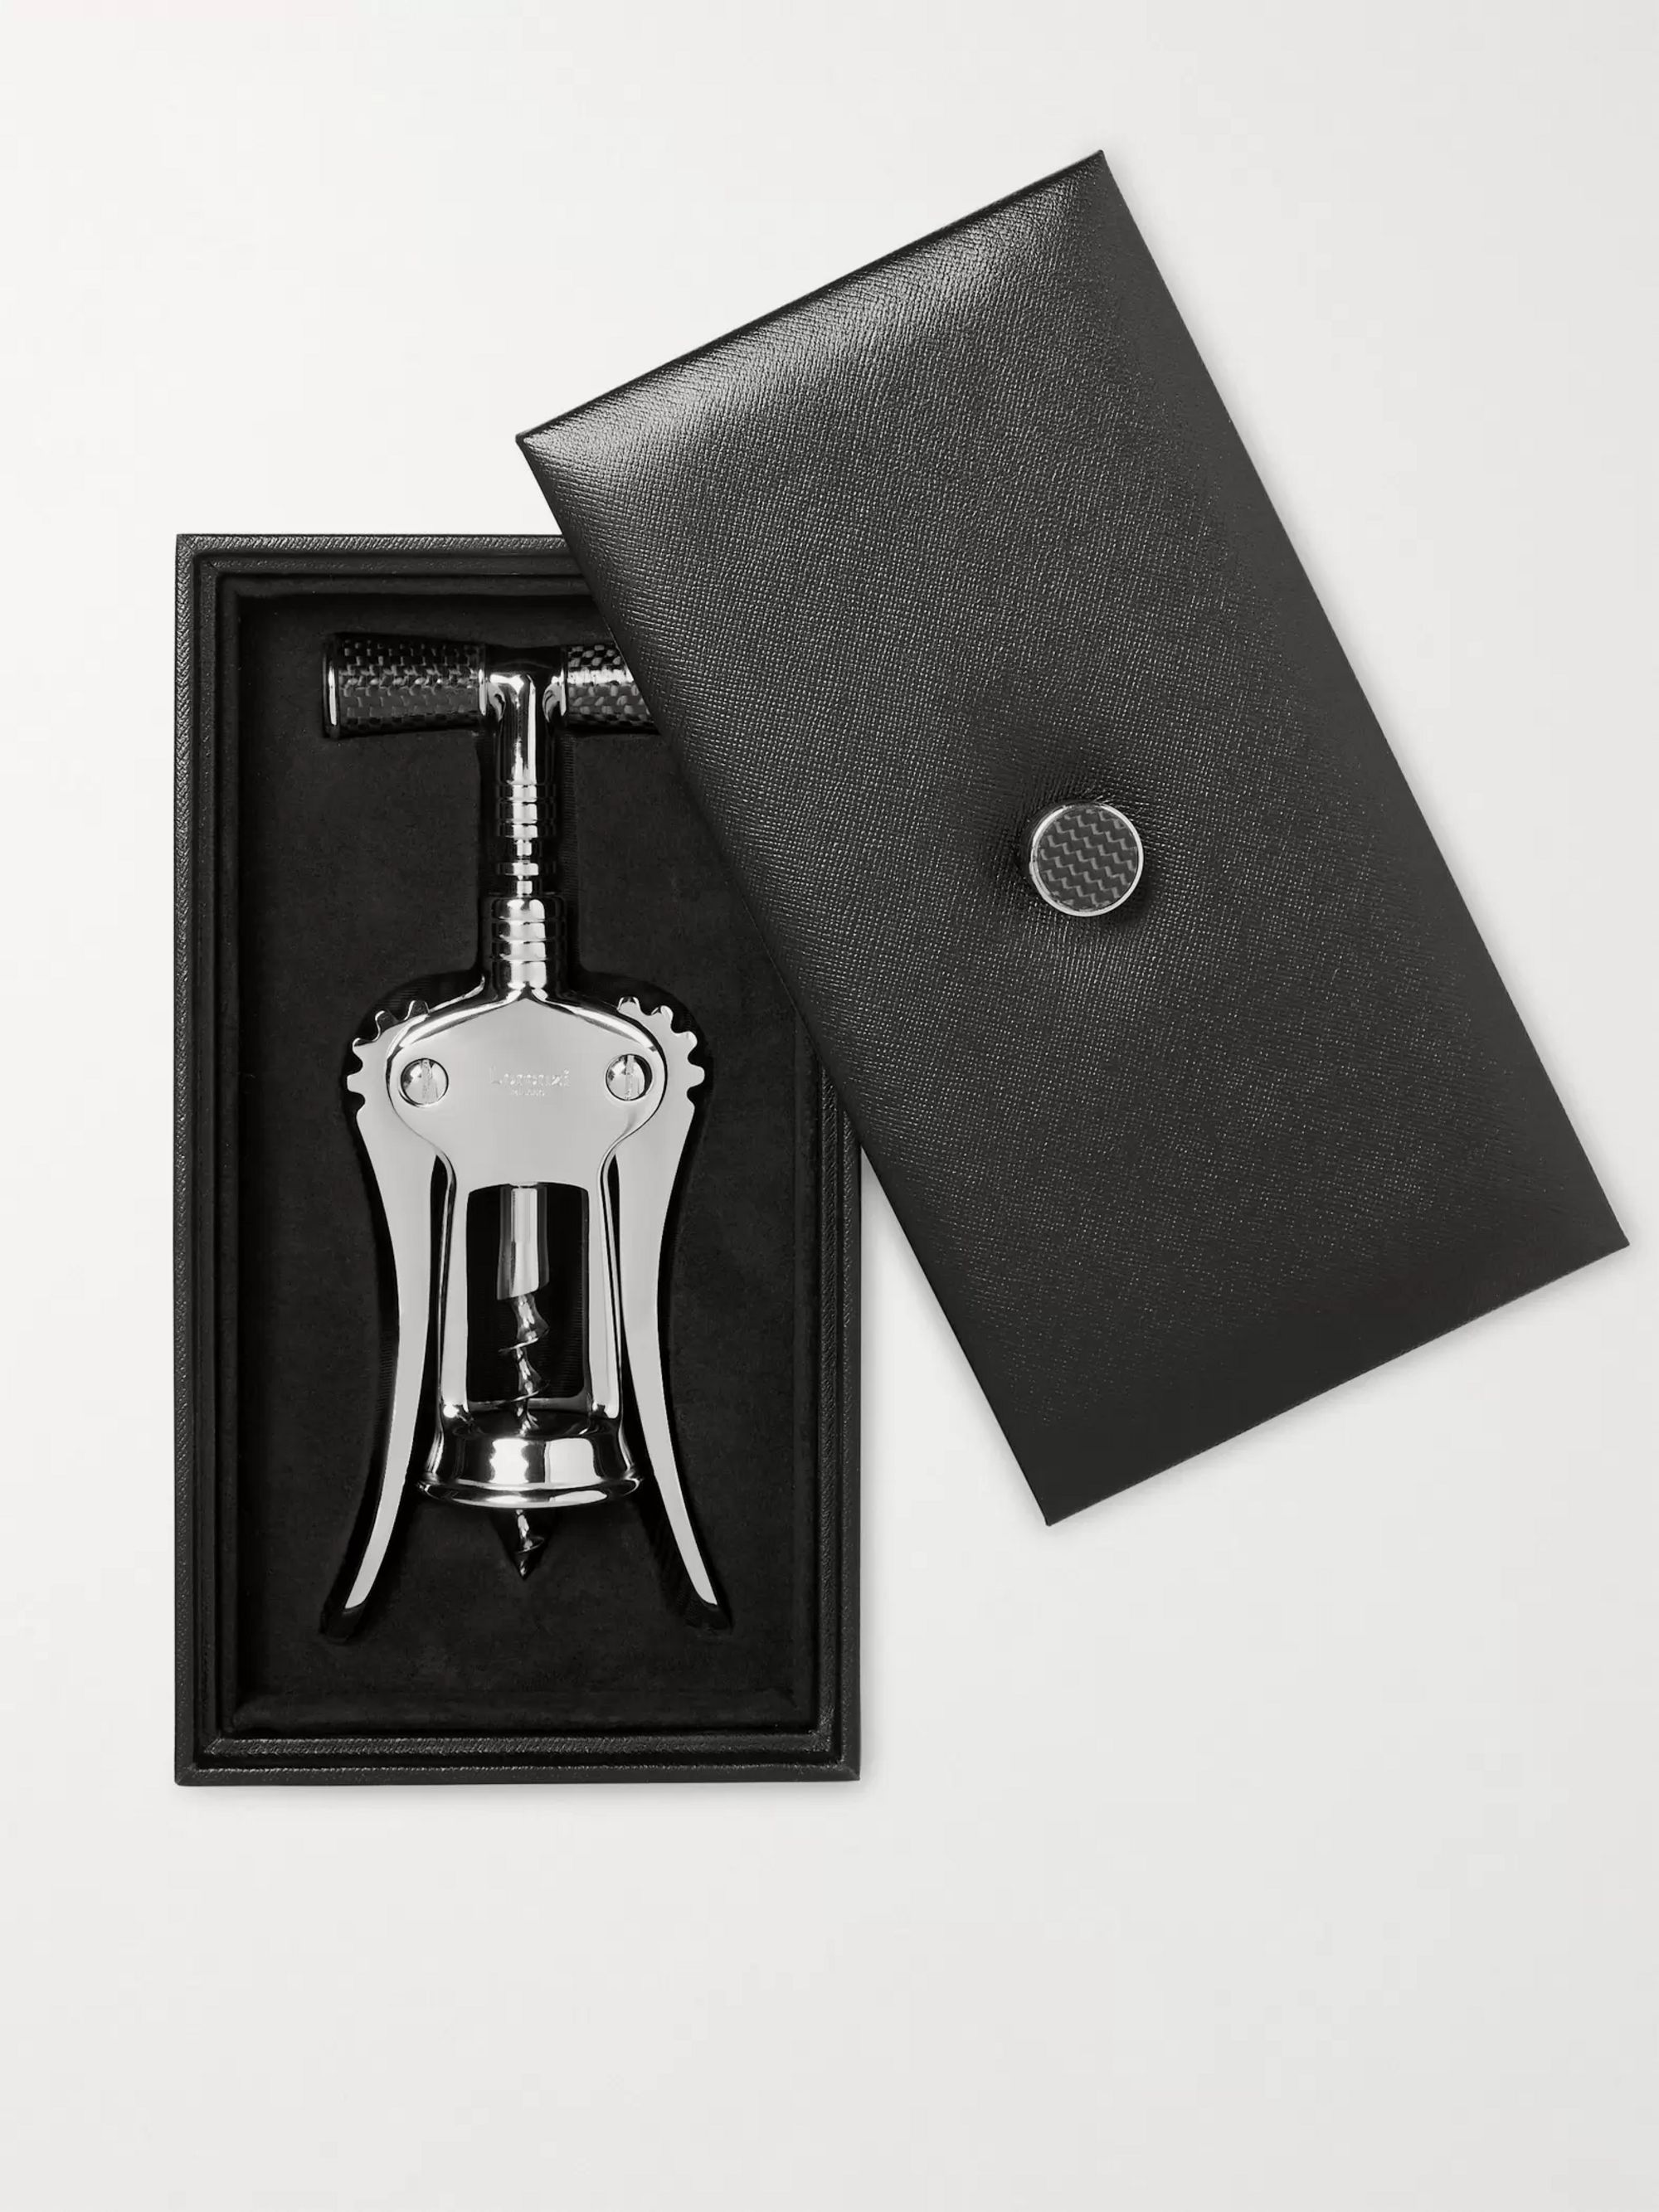 Lorenzi Milano Chrome-Plated, Stainless Steel and Carbon Fibre Corkscrew